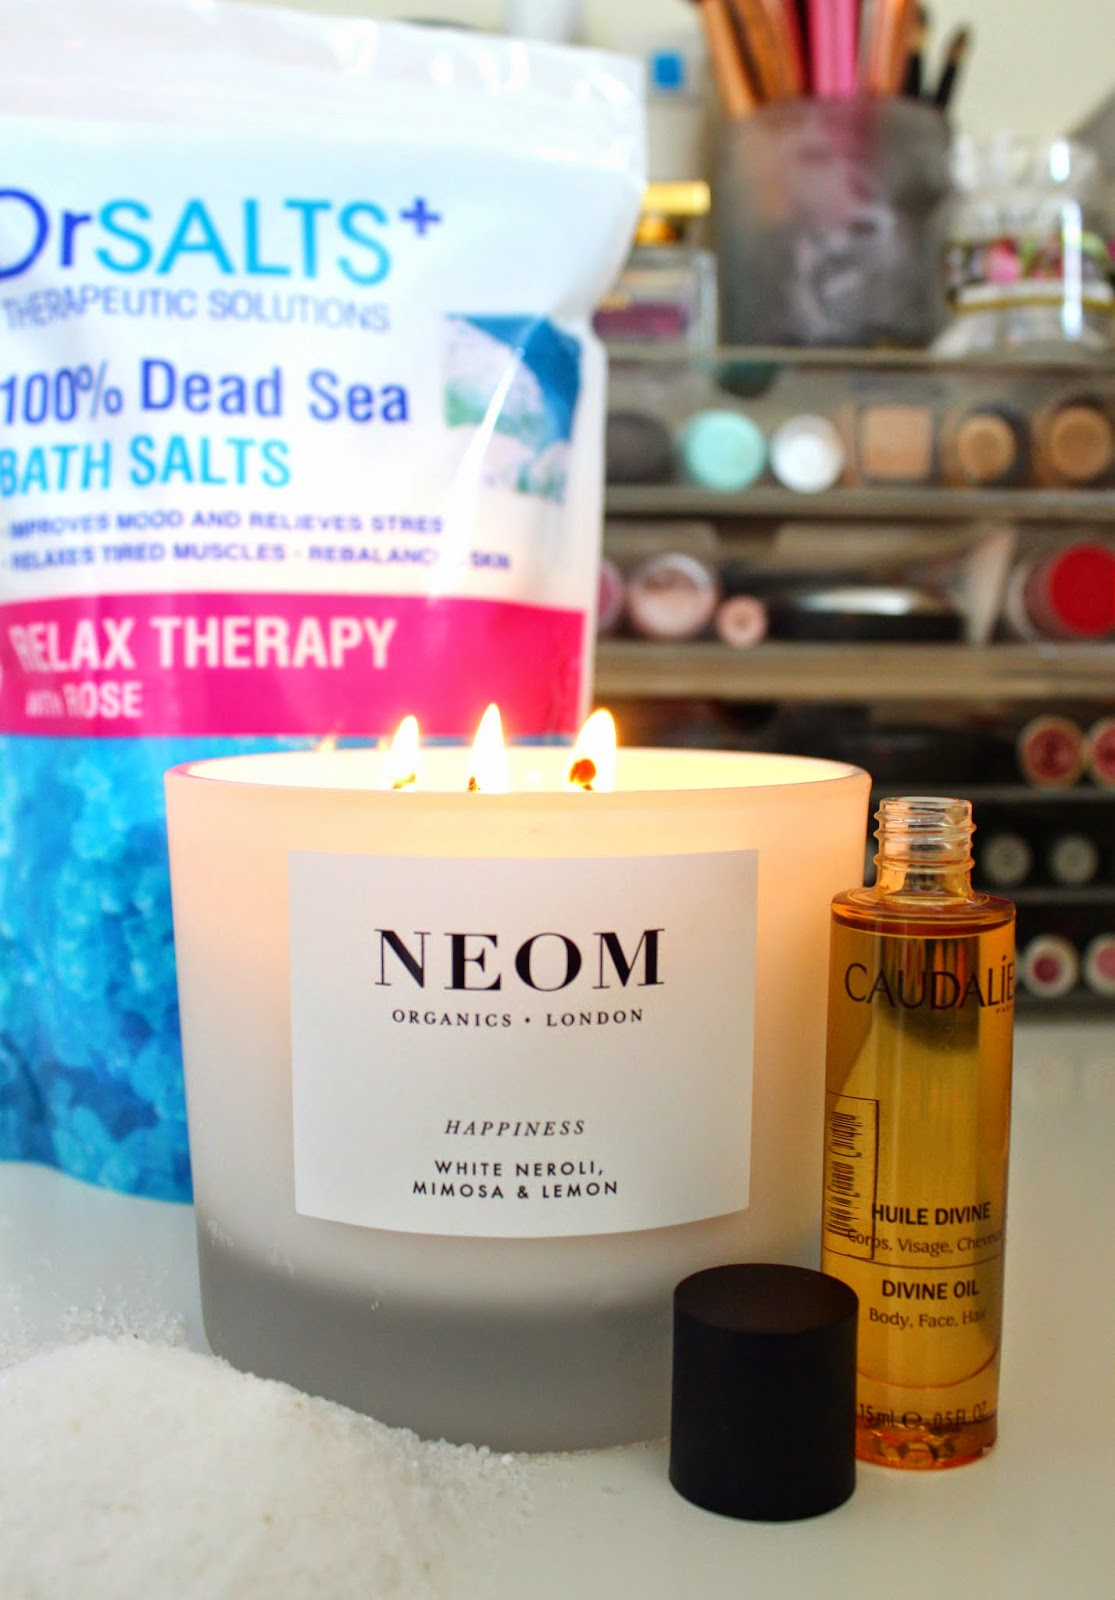 NEOM-ORGANICS-HAPPINESS-CANDLE